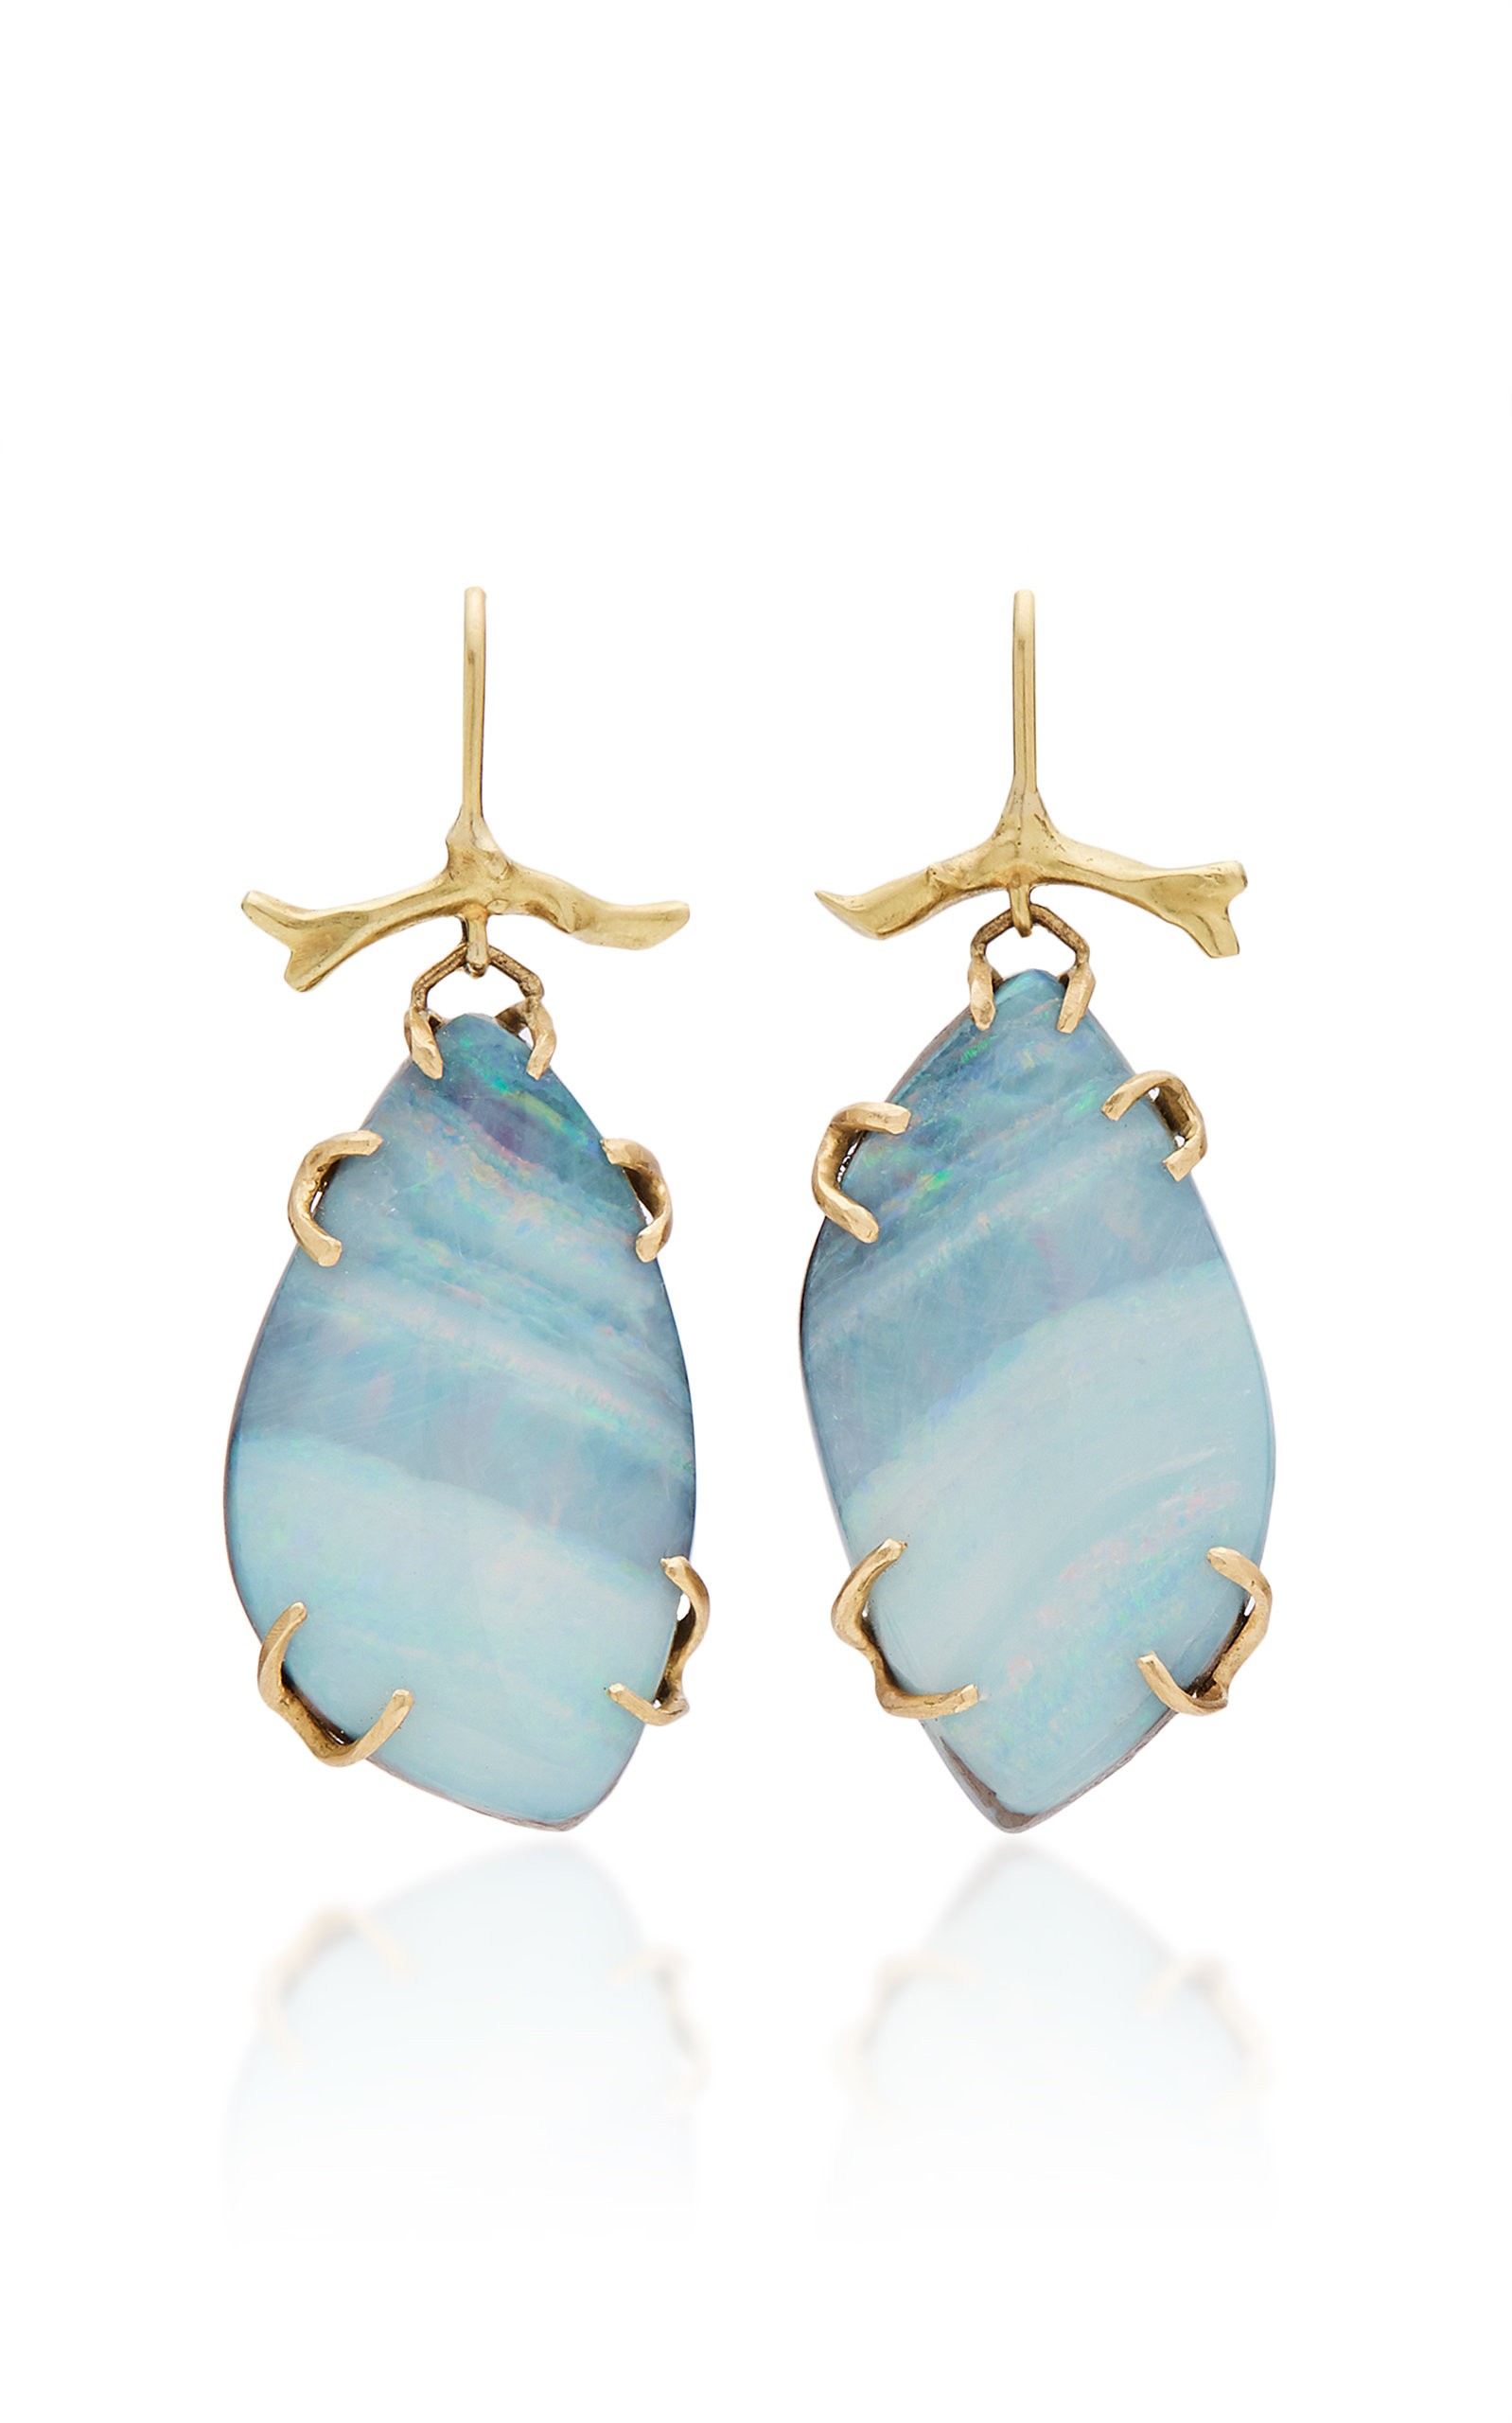 ANNETTE FERDINANDSEN M'O EXCLUSIVE: ONE-OF-A-KIND BOULDER OPAL BRANCH EARRINGS